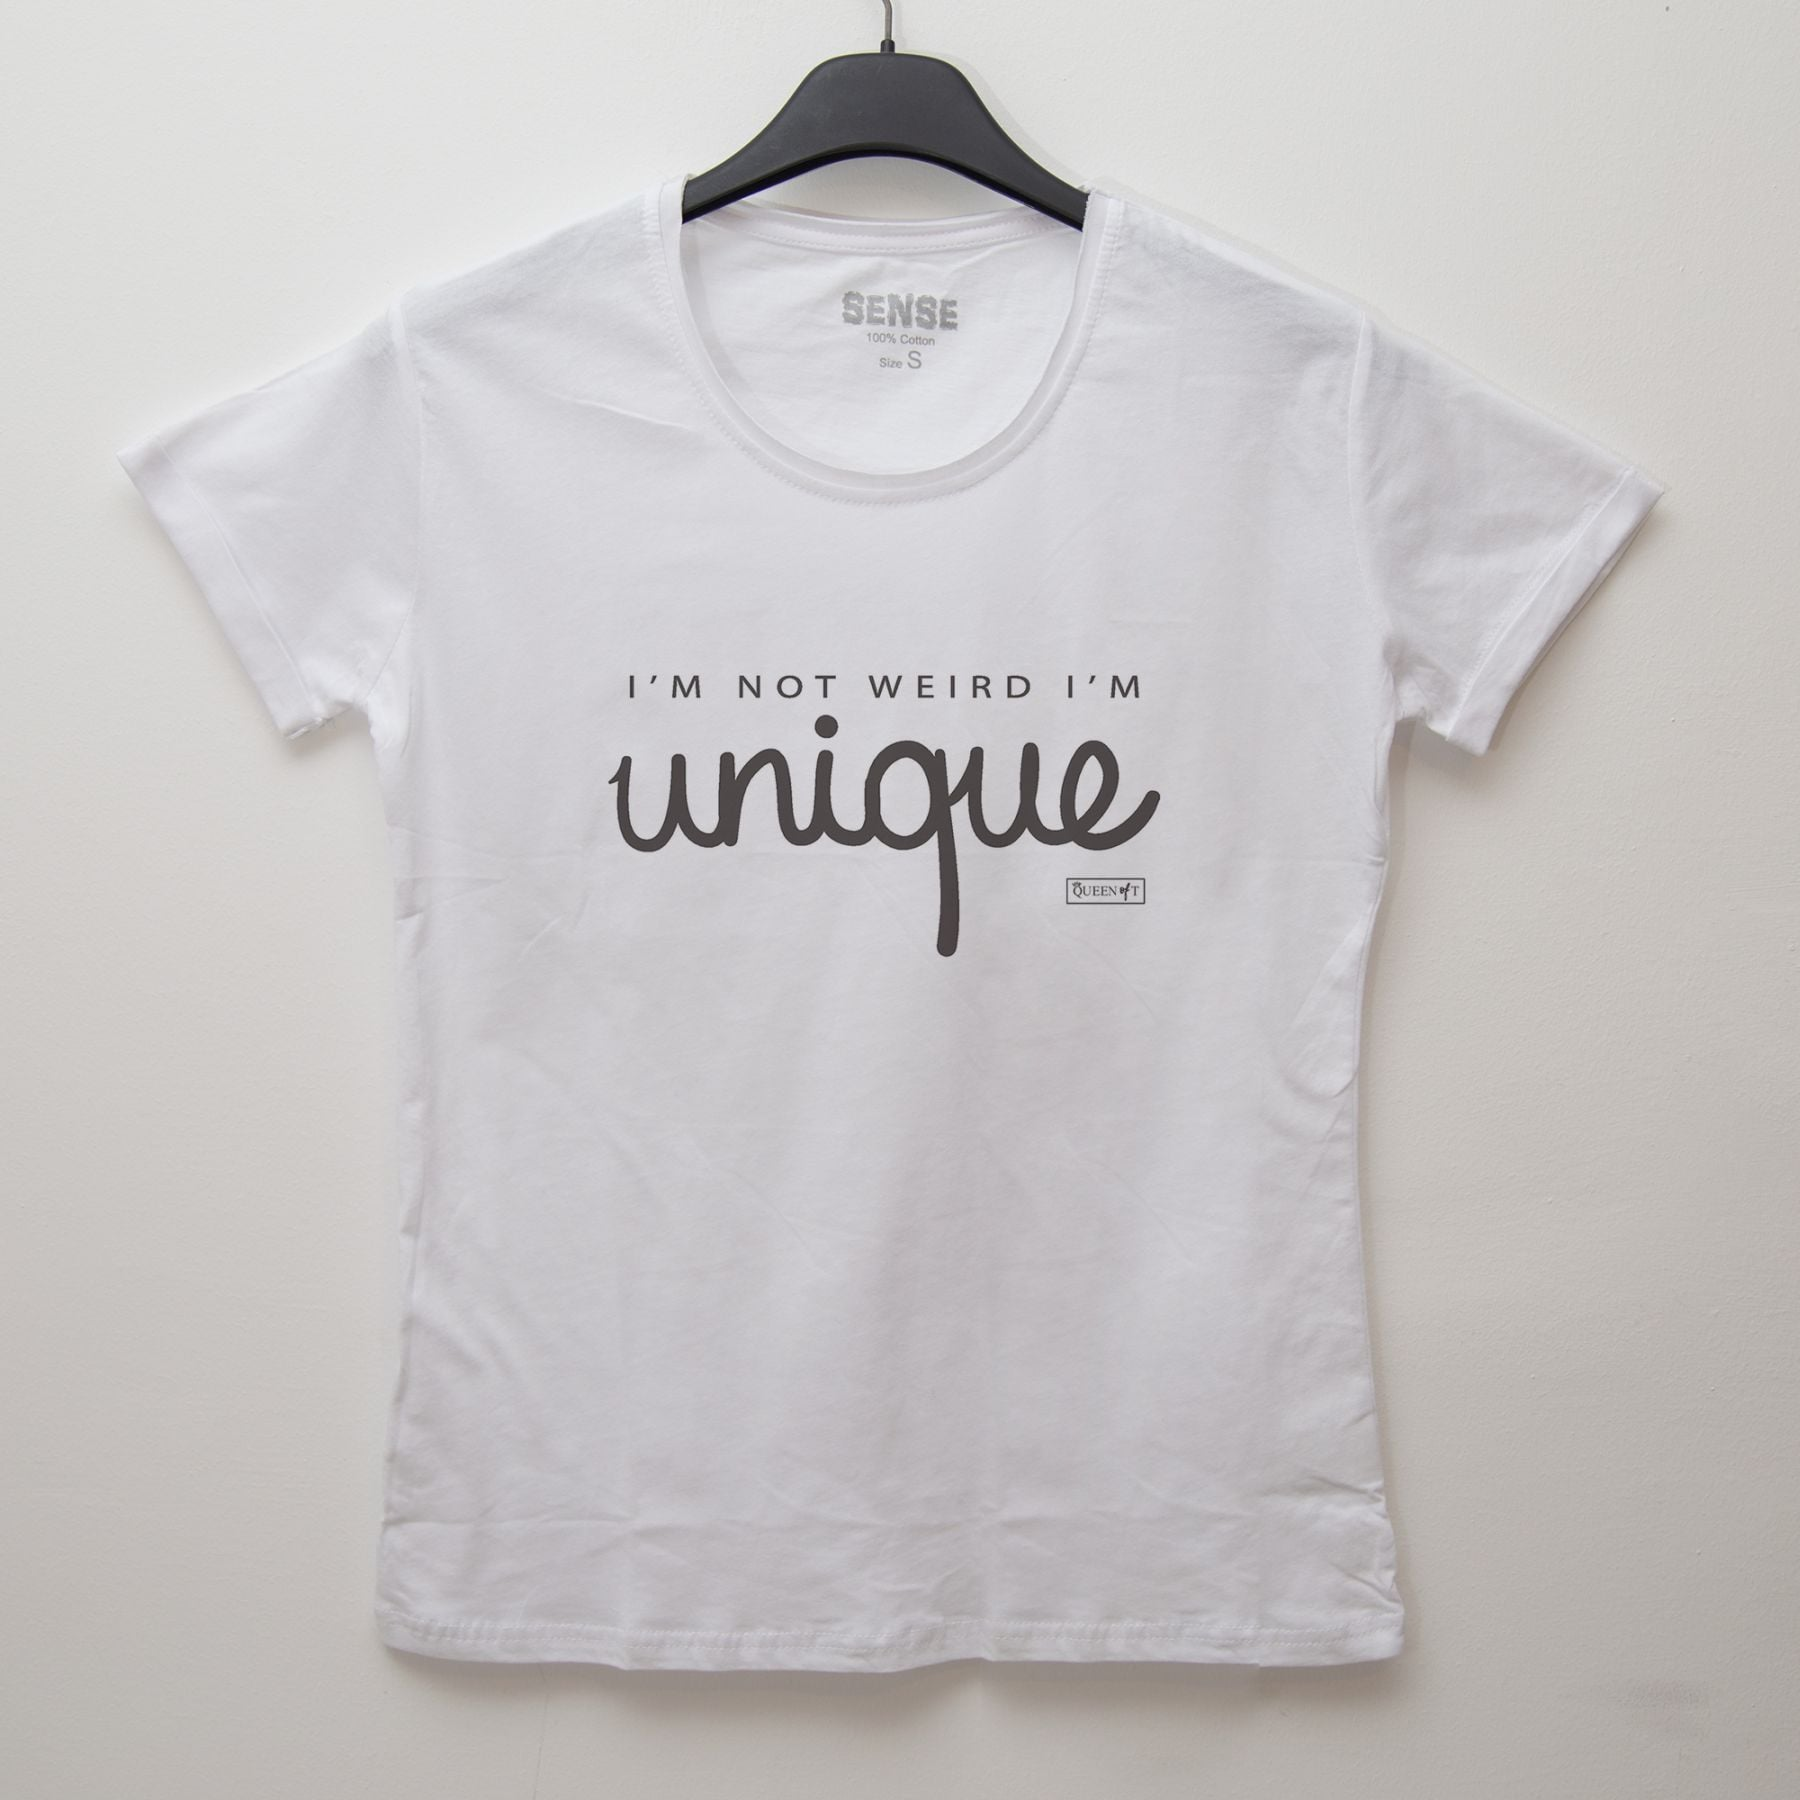 I'M NOT WEIRD I'M unique - Tshirt